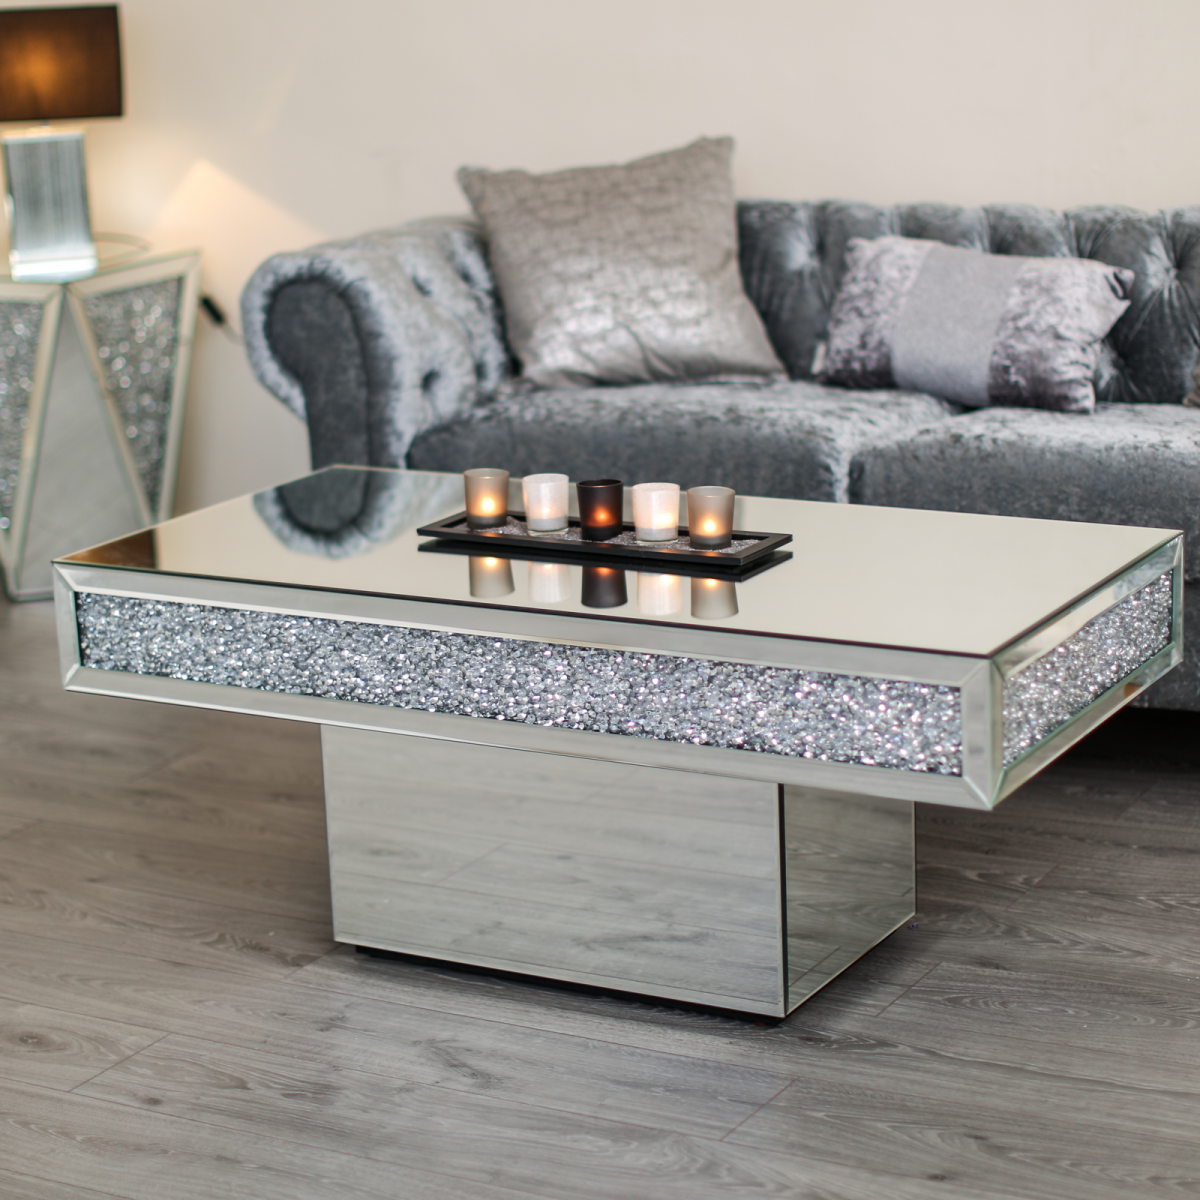 - Sparkle Furniture Diamond Crushed Mirrored Center Coffee Table